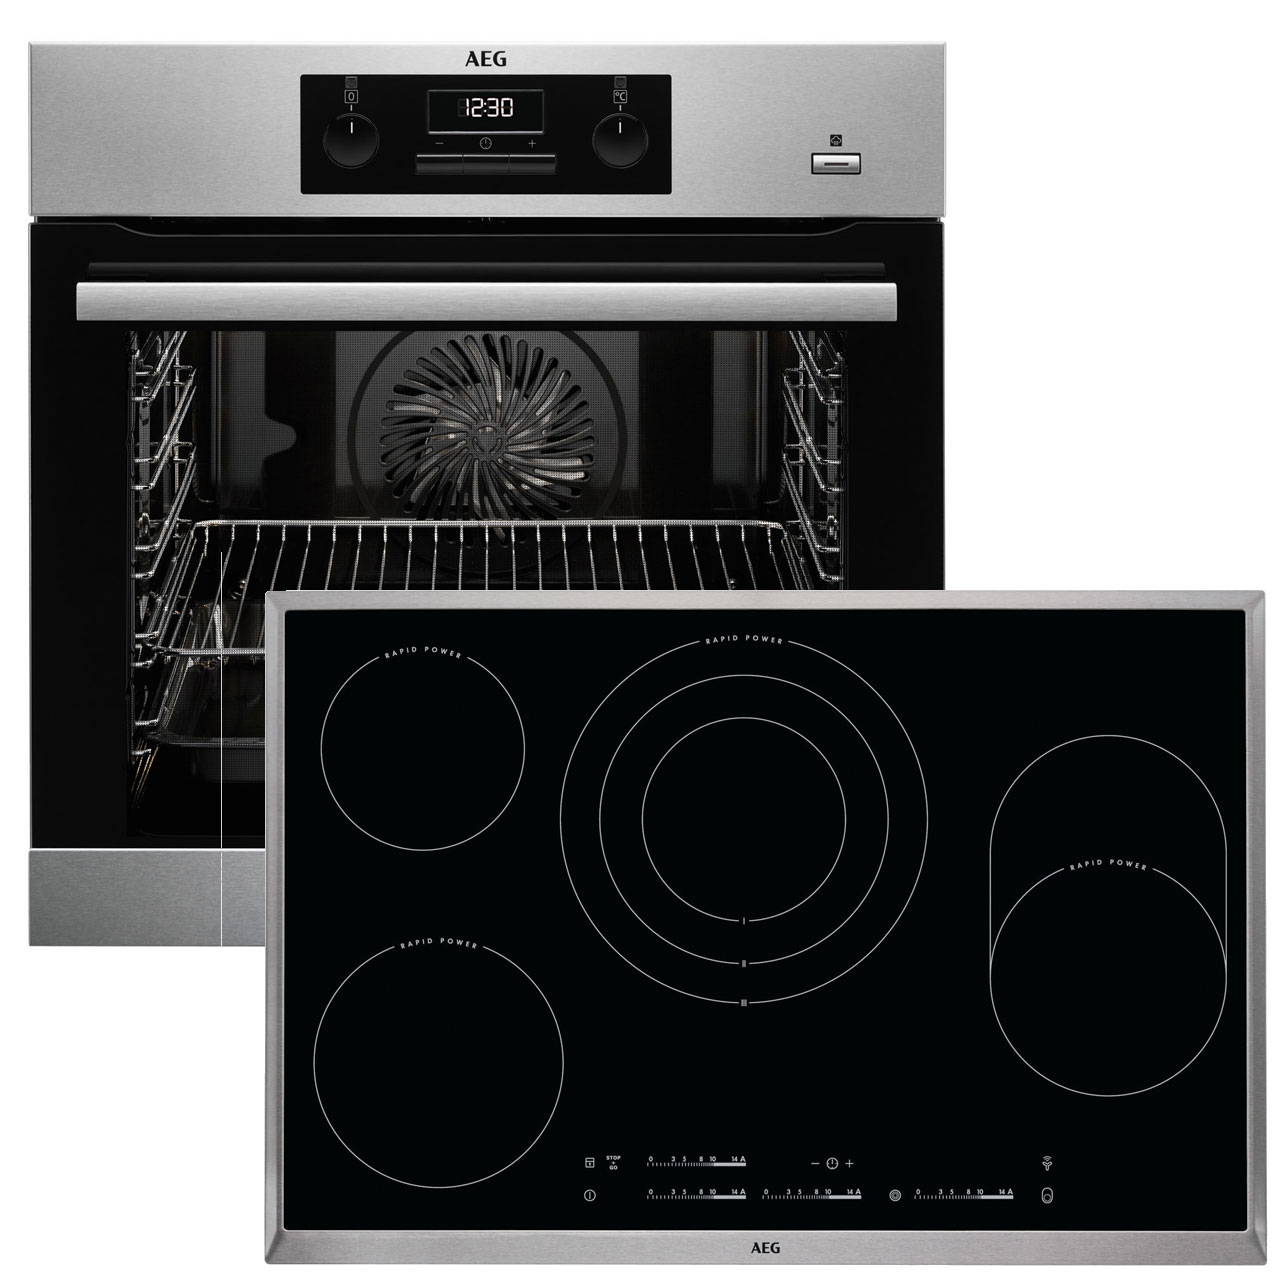 aeg beb353 backofen set beb351010m backofen hk854870x b autark ceran kochfel ebay. Black Bedroom Furniture Sets. Home Design Ideas